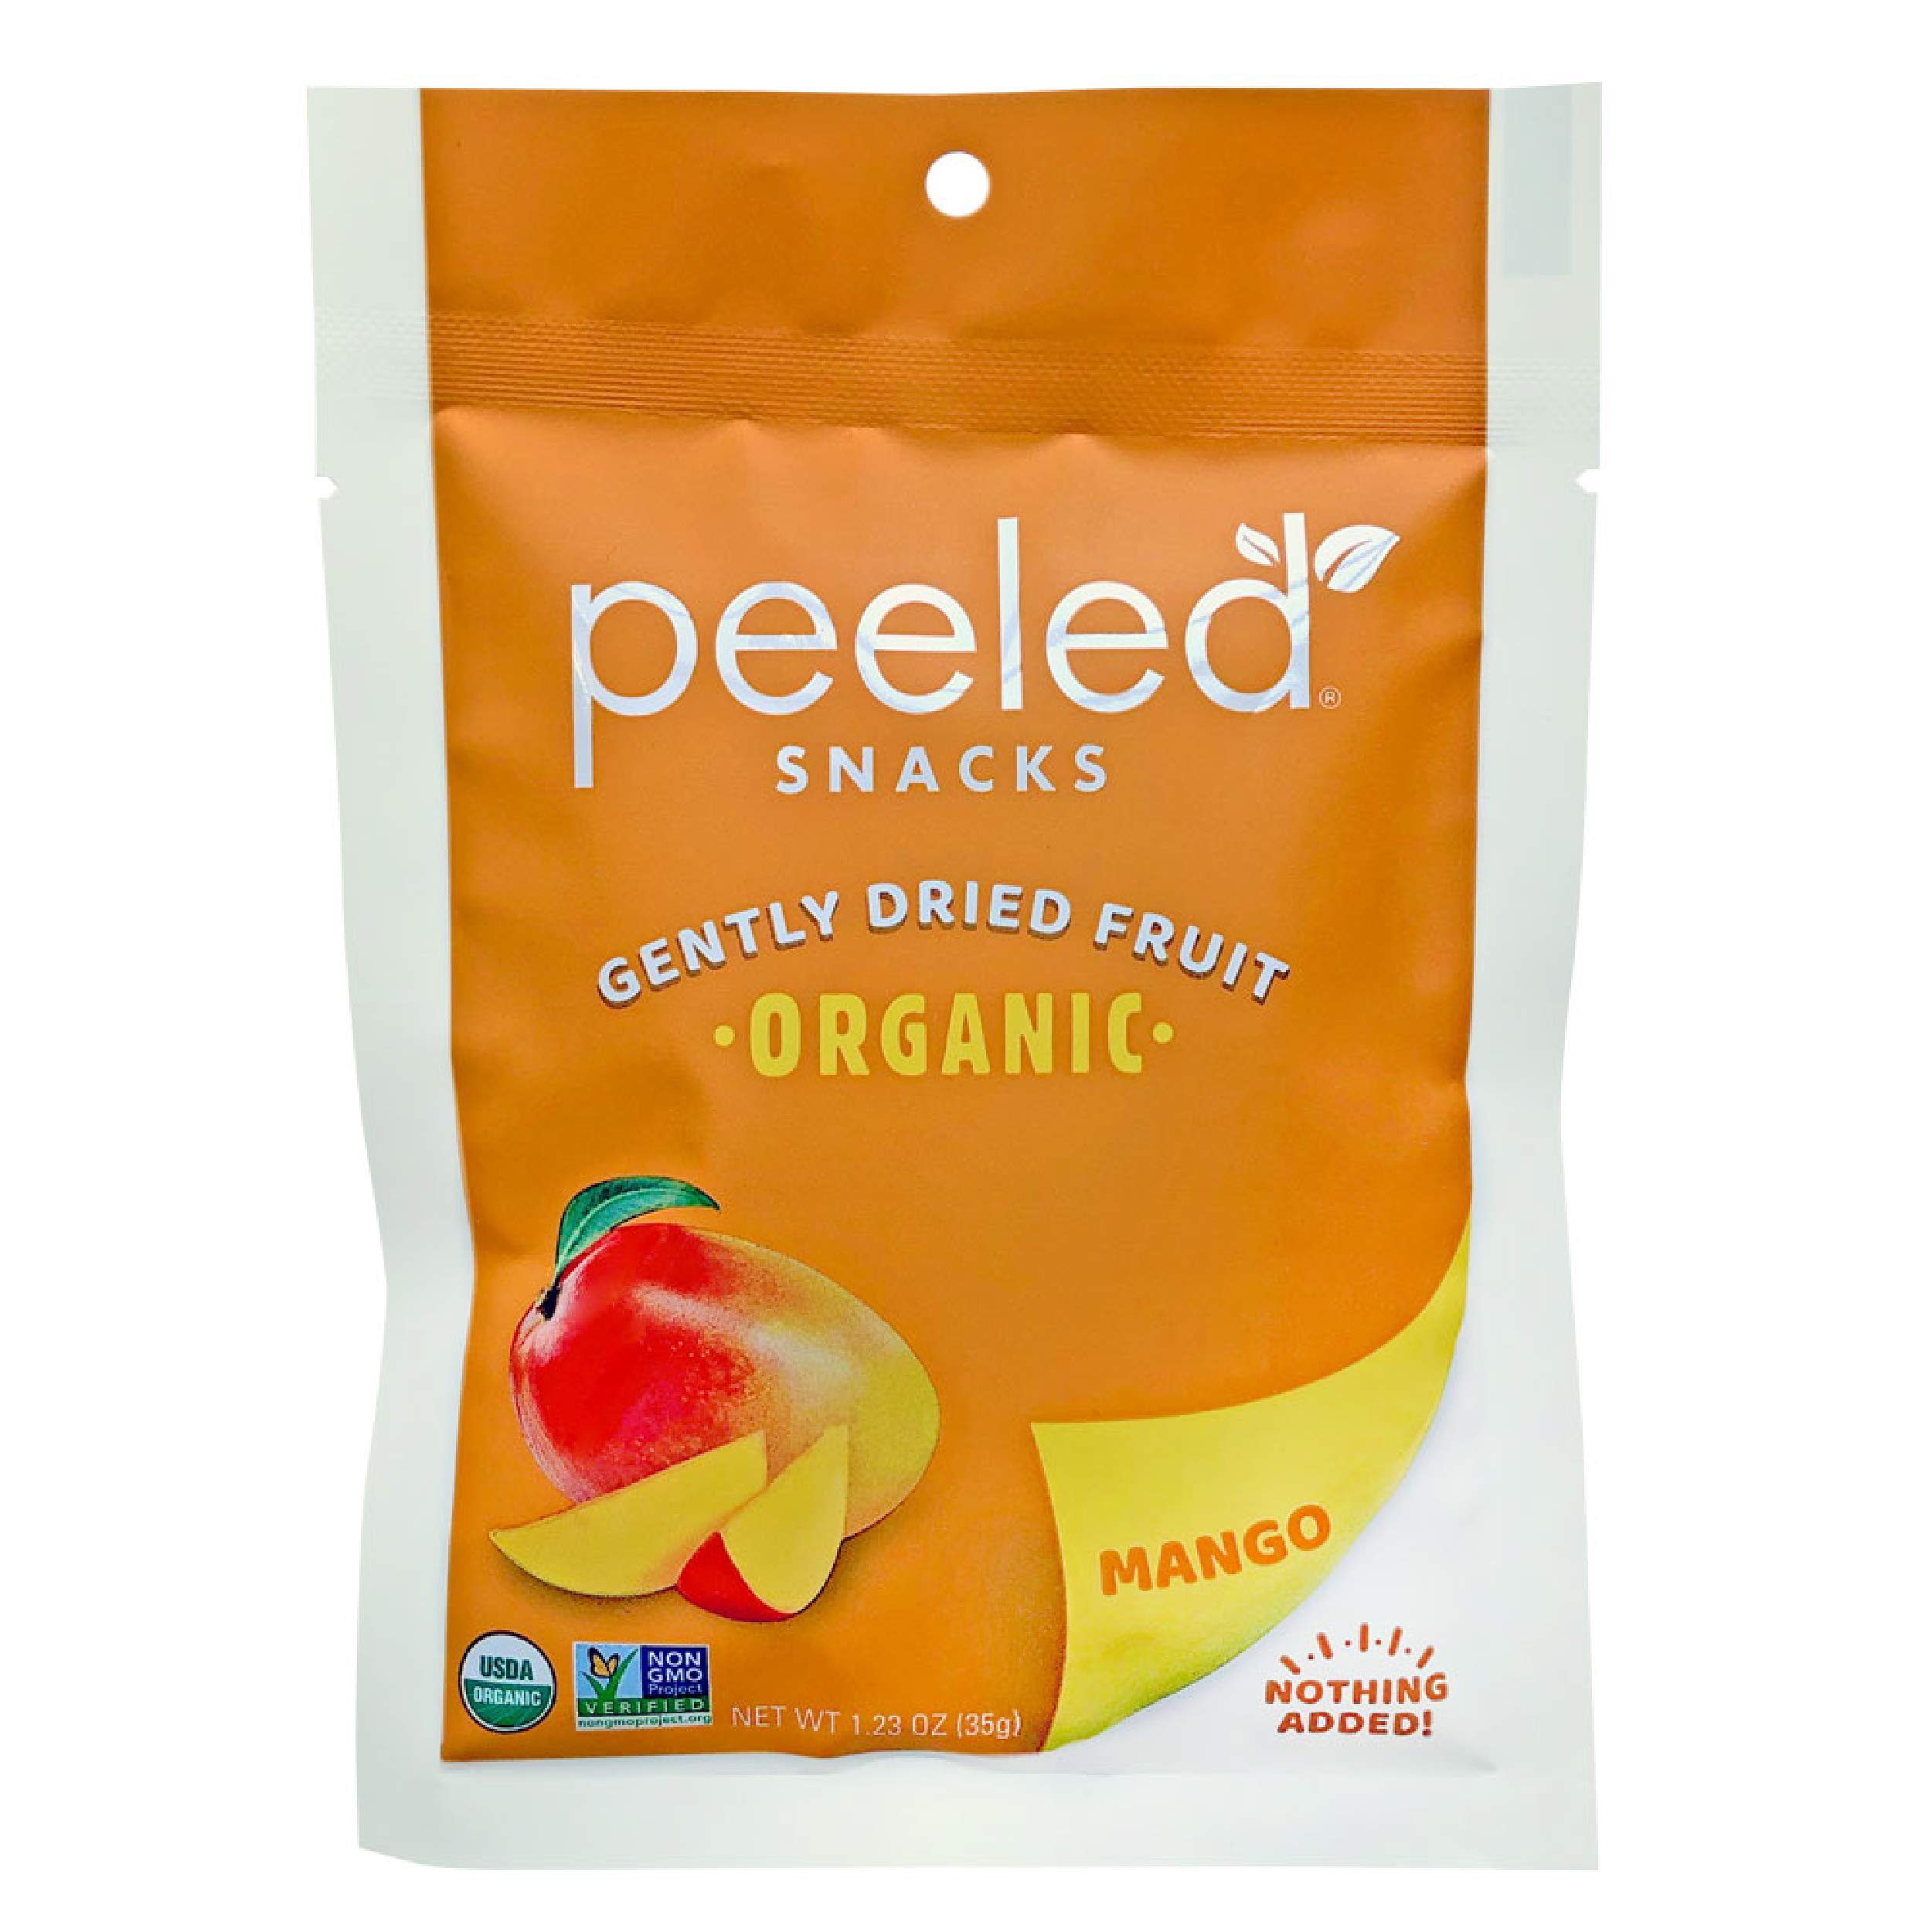 Peeled Snacks Organic Dried Fruit, Mango, 1.23 oz., Pack of 10 – Healthy, Vegan Snacks for On-the-Go, Lunch and More